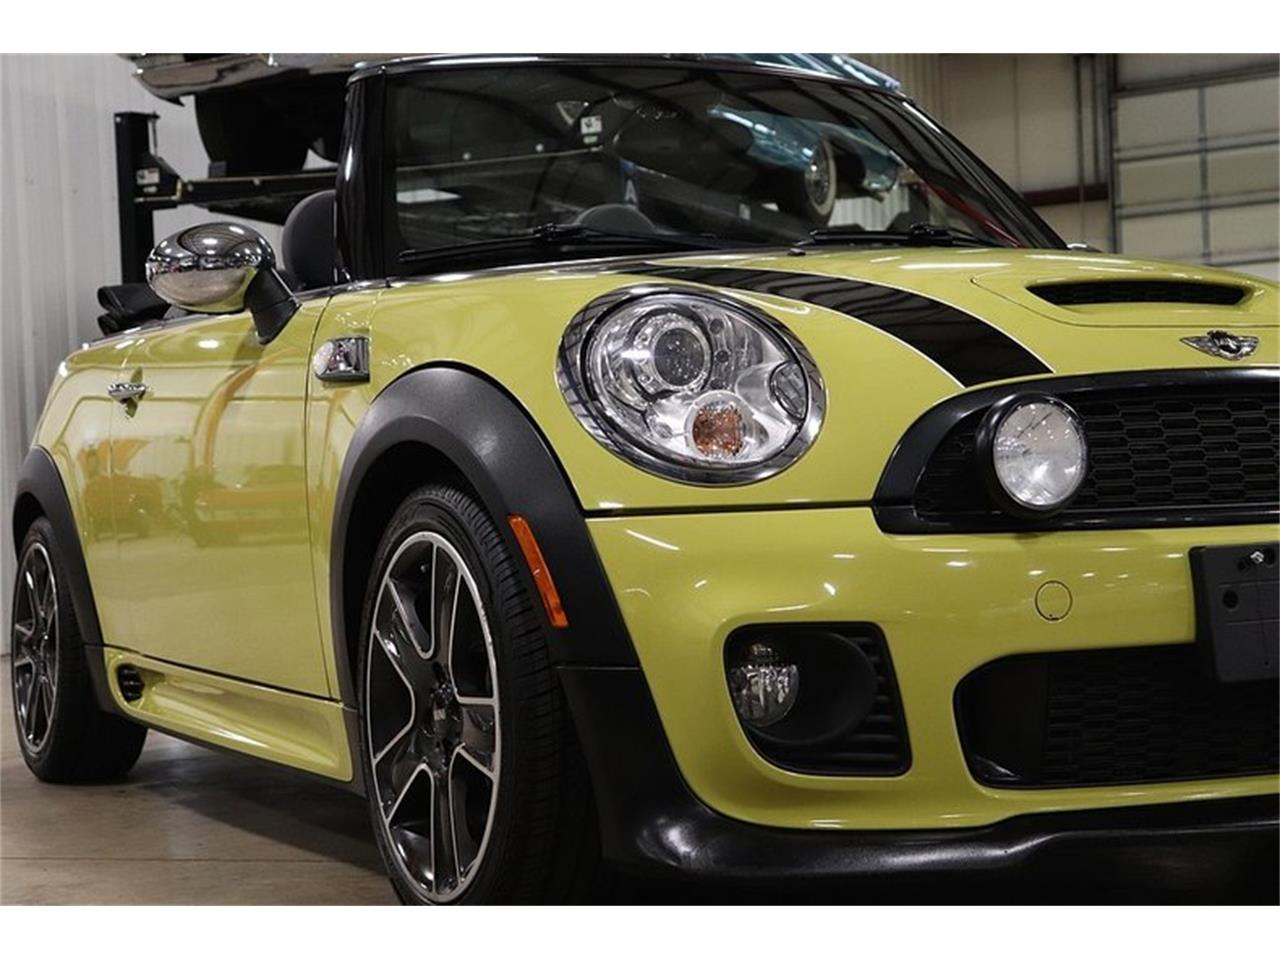 2009 MINI Cooper for sale in Kentwood, MI – photo 34